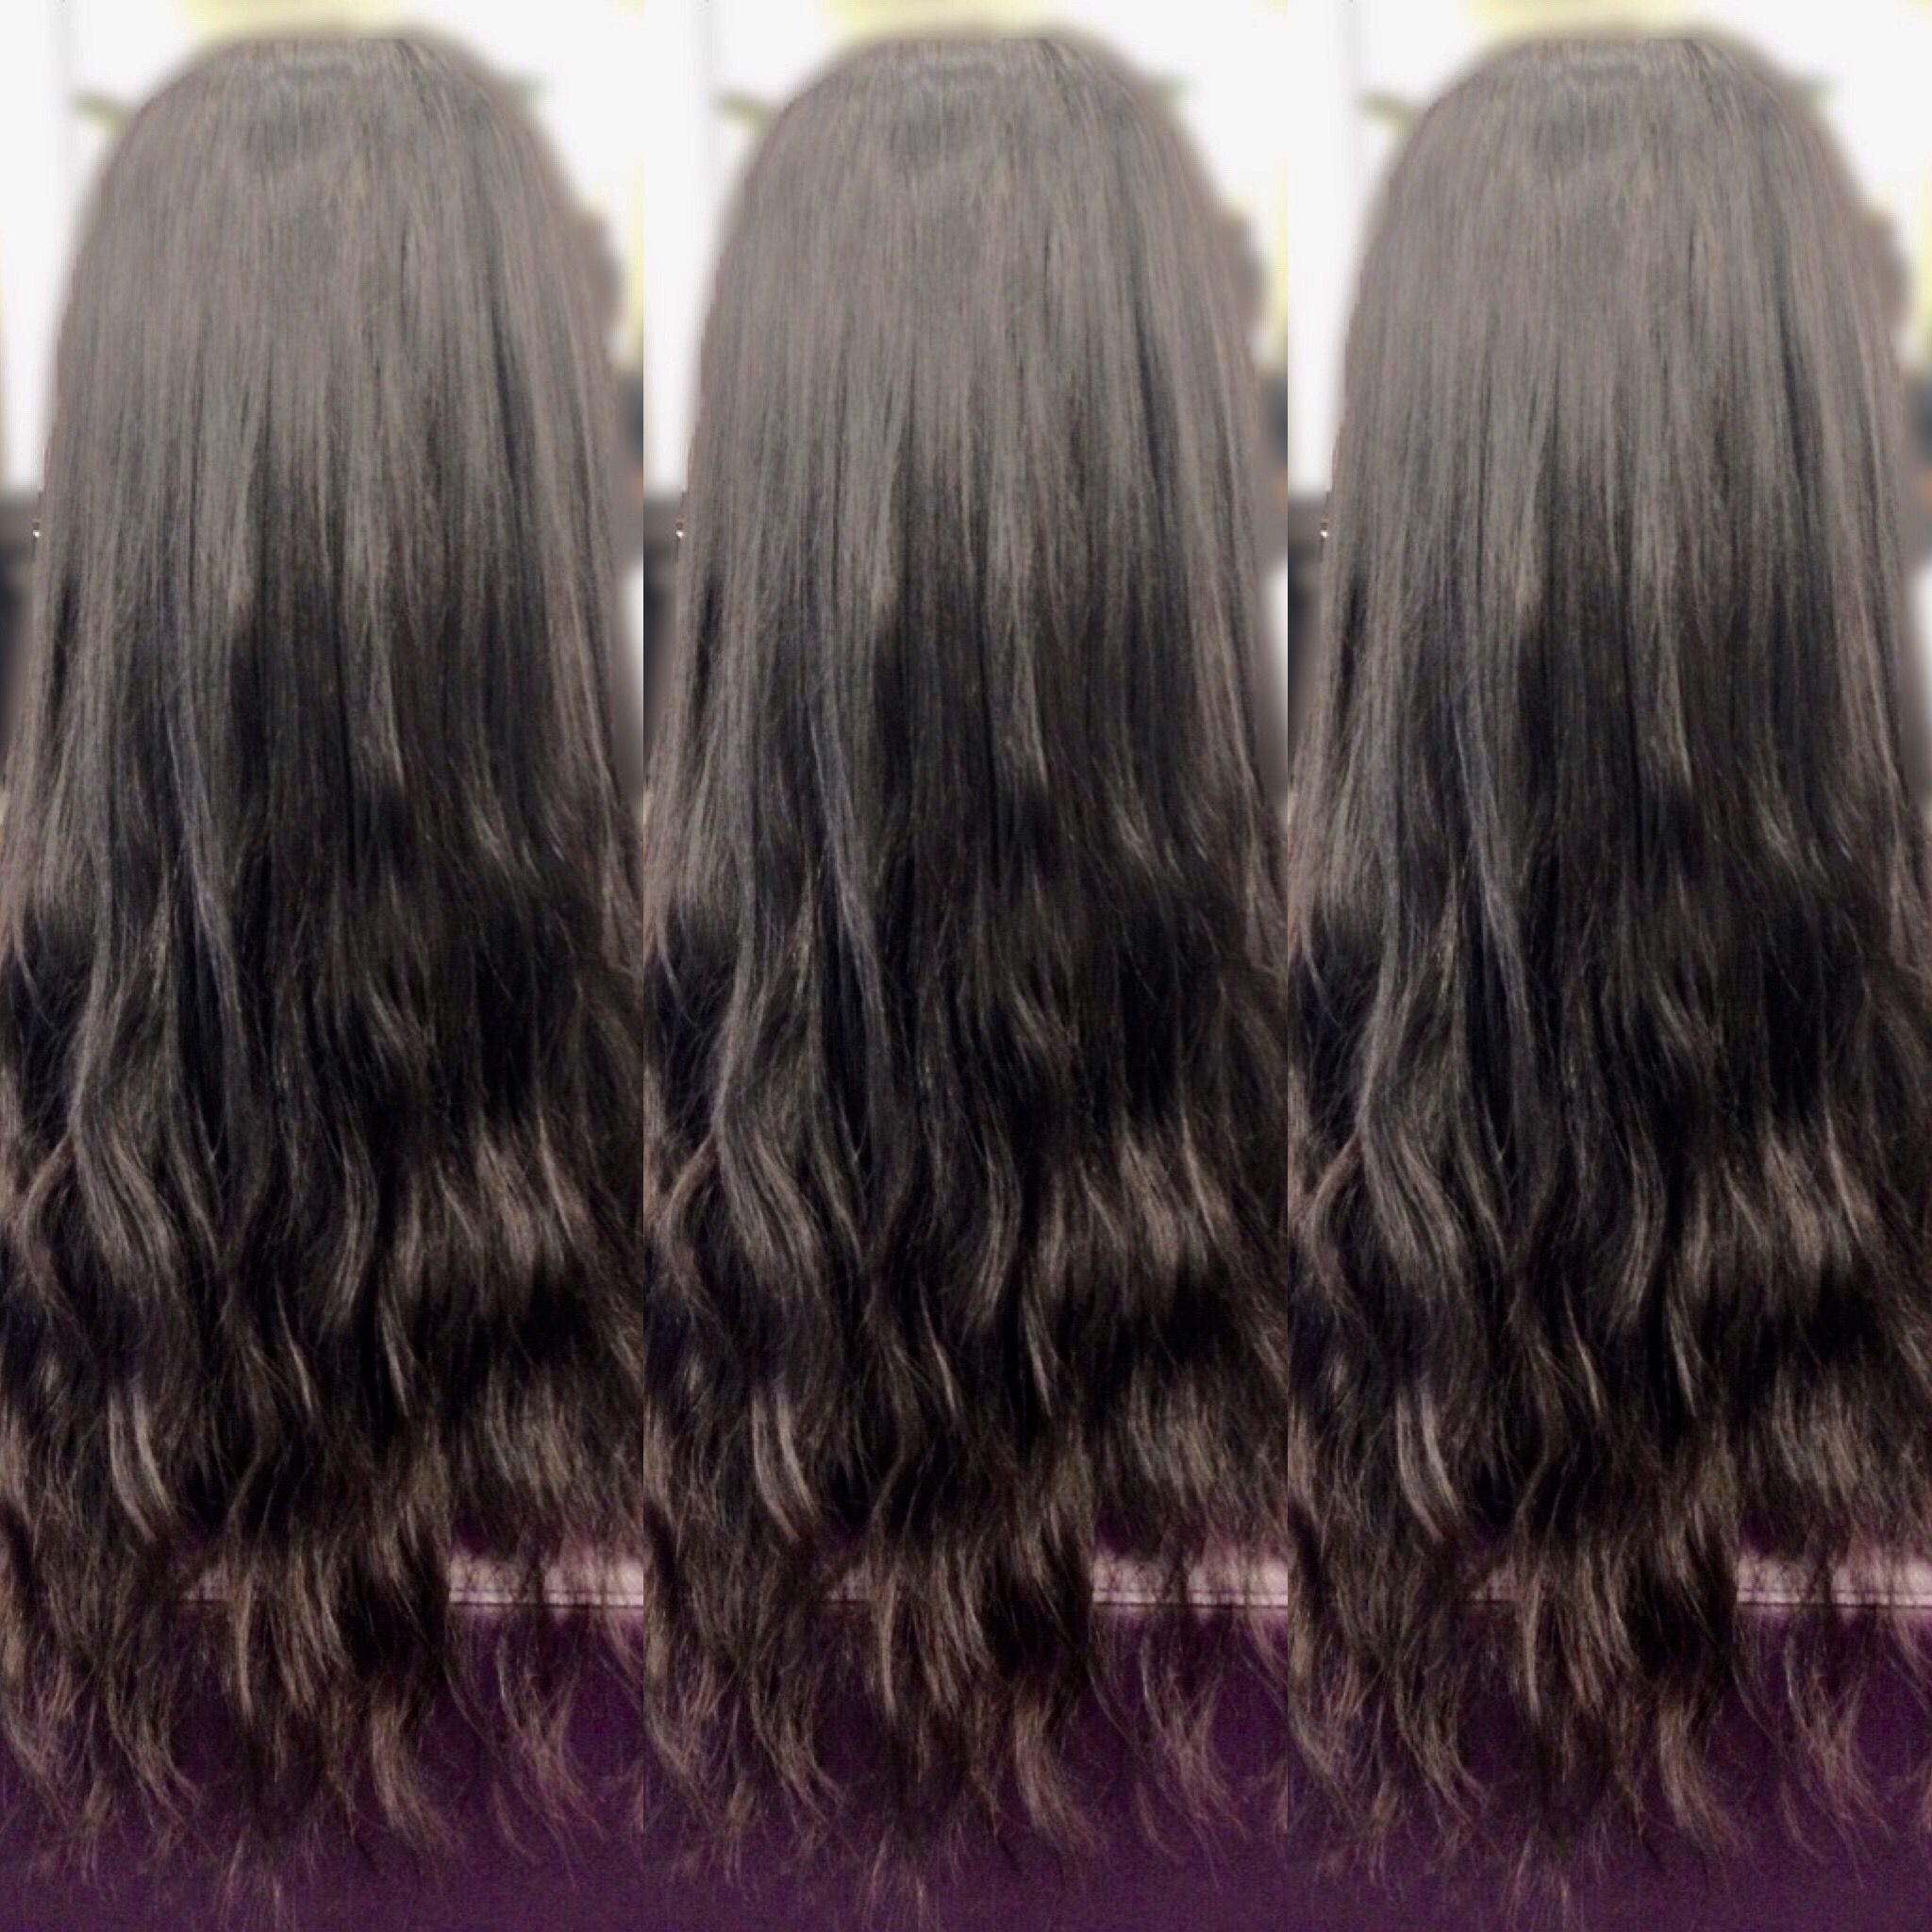 5 Rows Of 18 Bohyme Hair Extensions In Body Wave Dries Perfectly